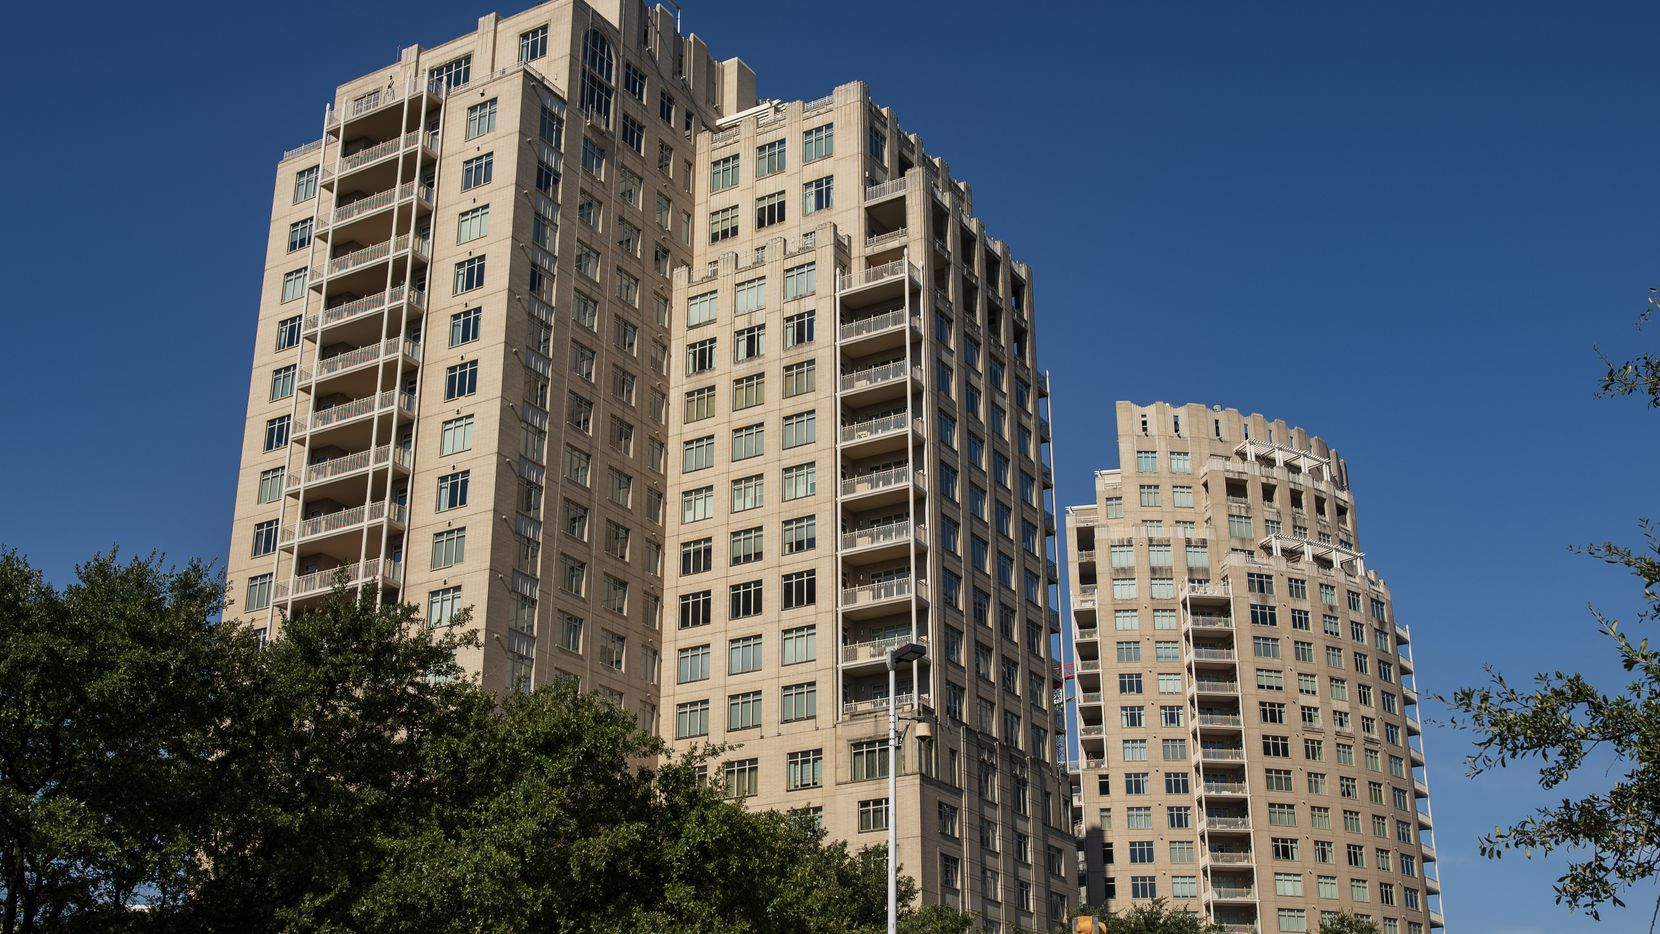 More than a dozen condos in the Ritz-Carlton high-rises north of downtown have recently come on the market.